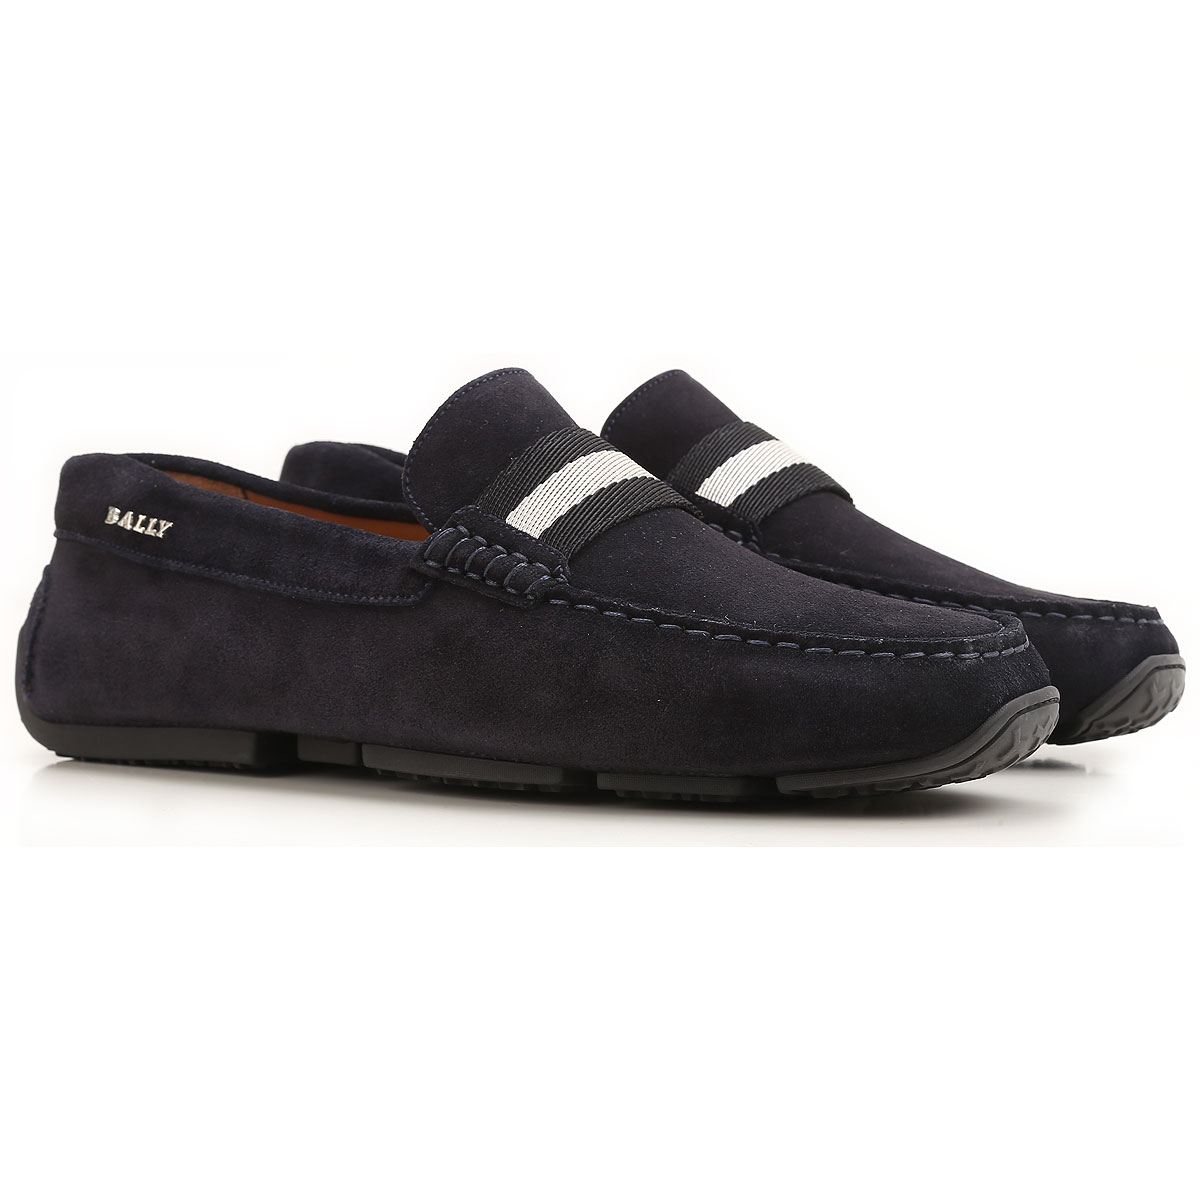 Image of Bally Driver Loafer Shoes for Men On Sale, Midnight Blue, Suede leather, 2017, UK 6 • EU 40 • US 7 UK 6.5 • EU 40.5 • US 7.5